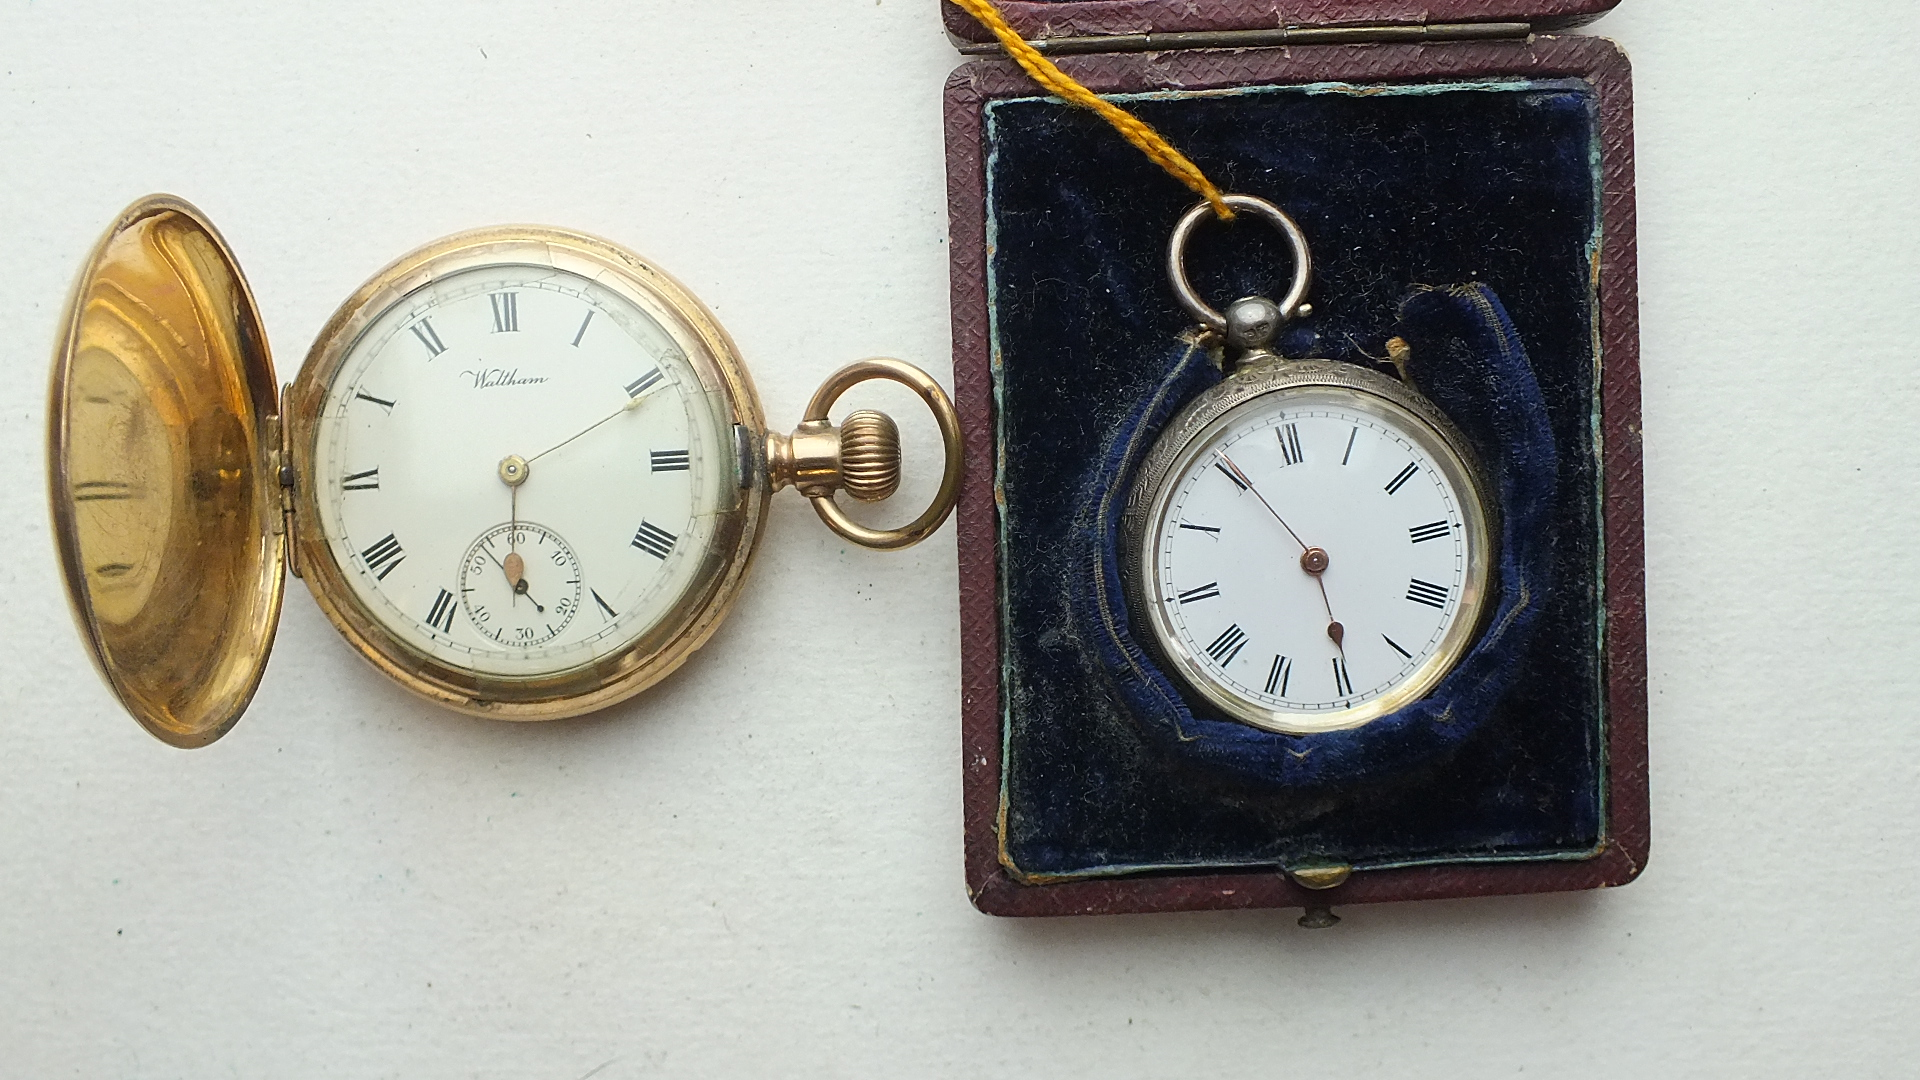 Lot 256 - A ladies silver-cased key-wind pocket watch, cased and a gent's gold-plated hunter-cased keyless